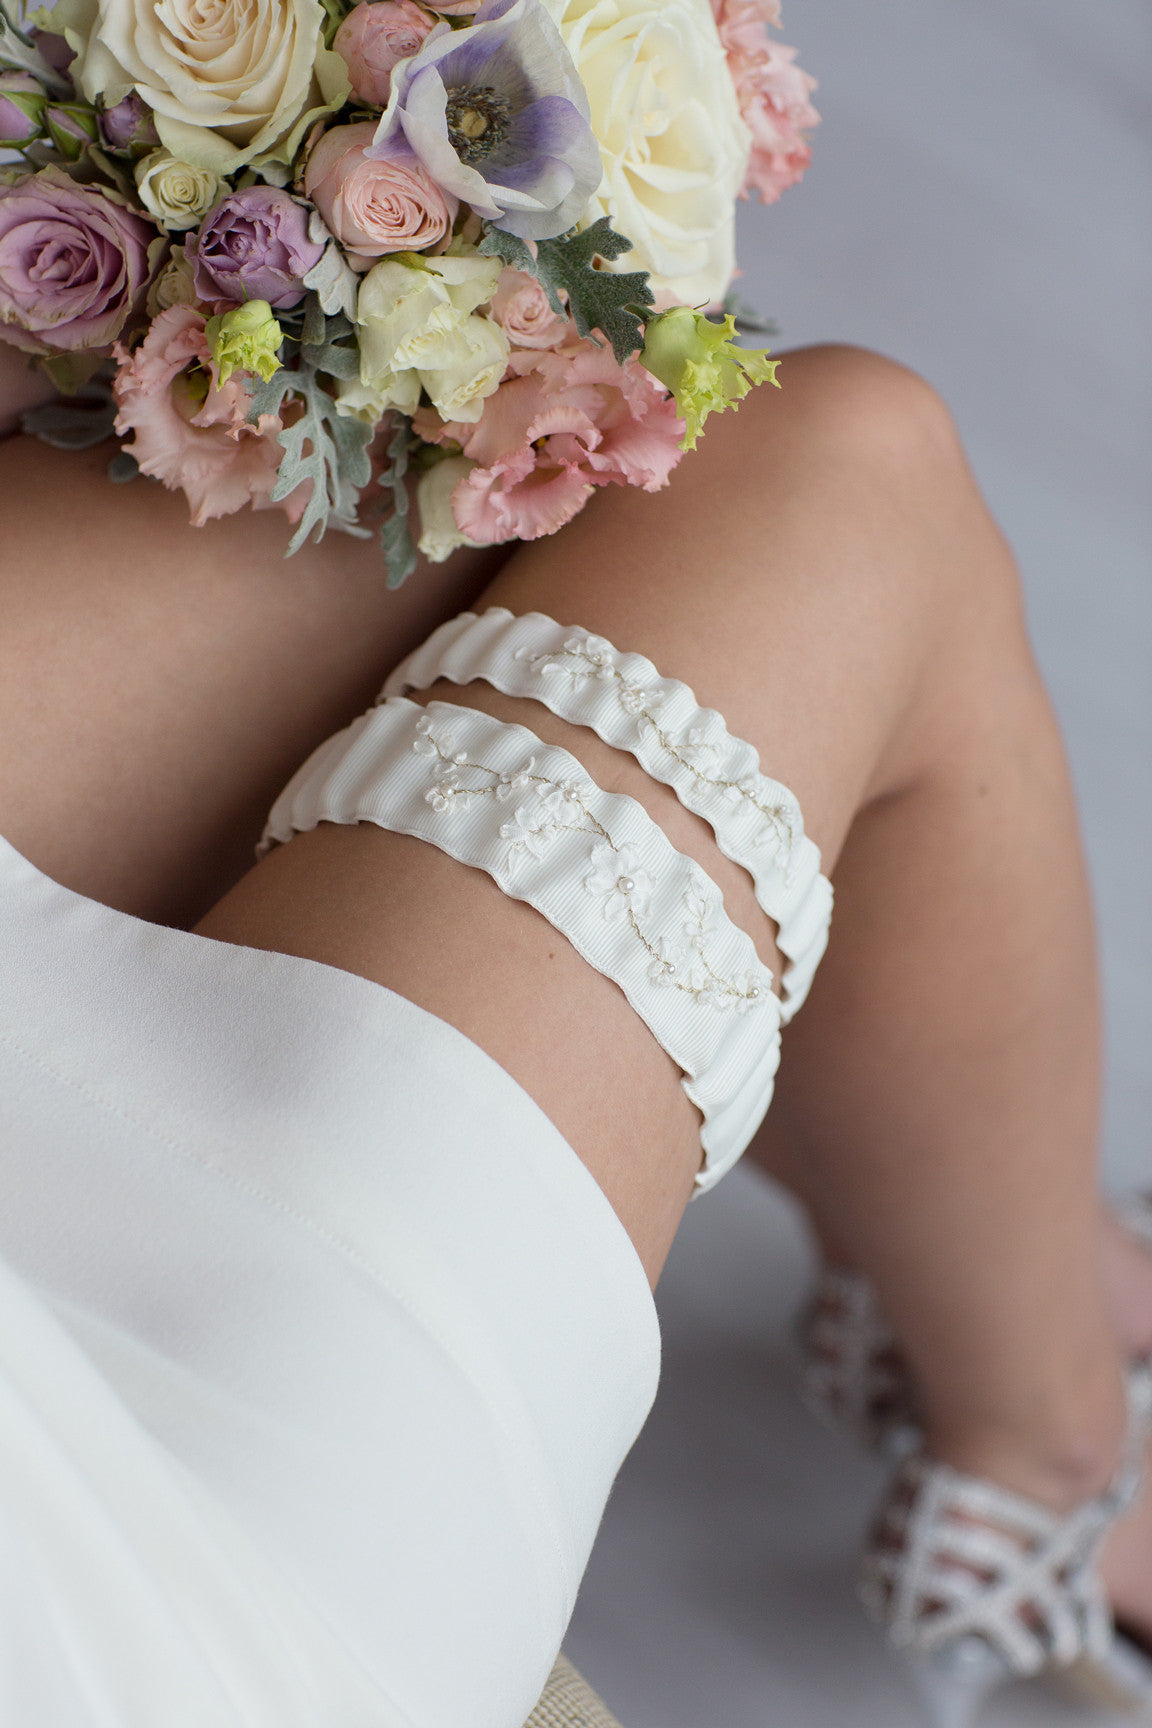 White Bridal Garter Ruffle Flower Embroidery by Liumy Design Atelje